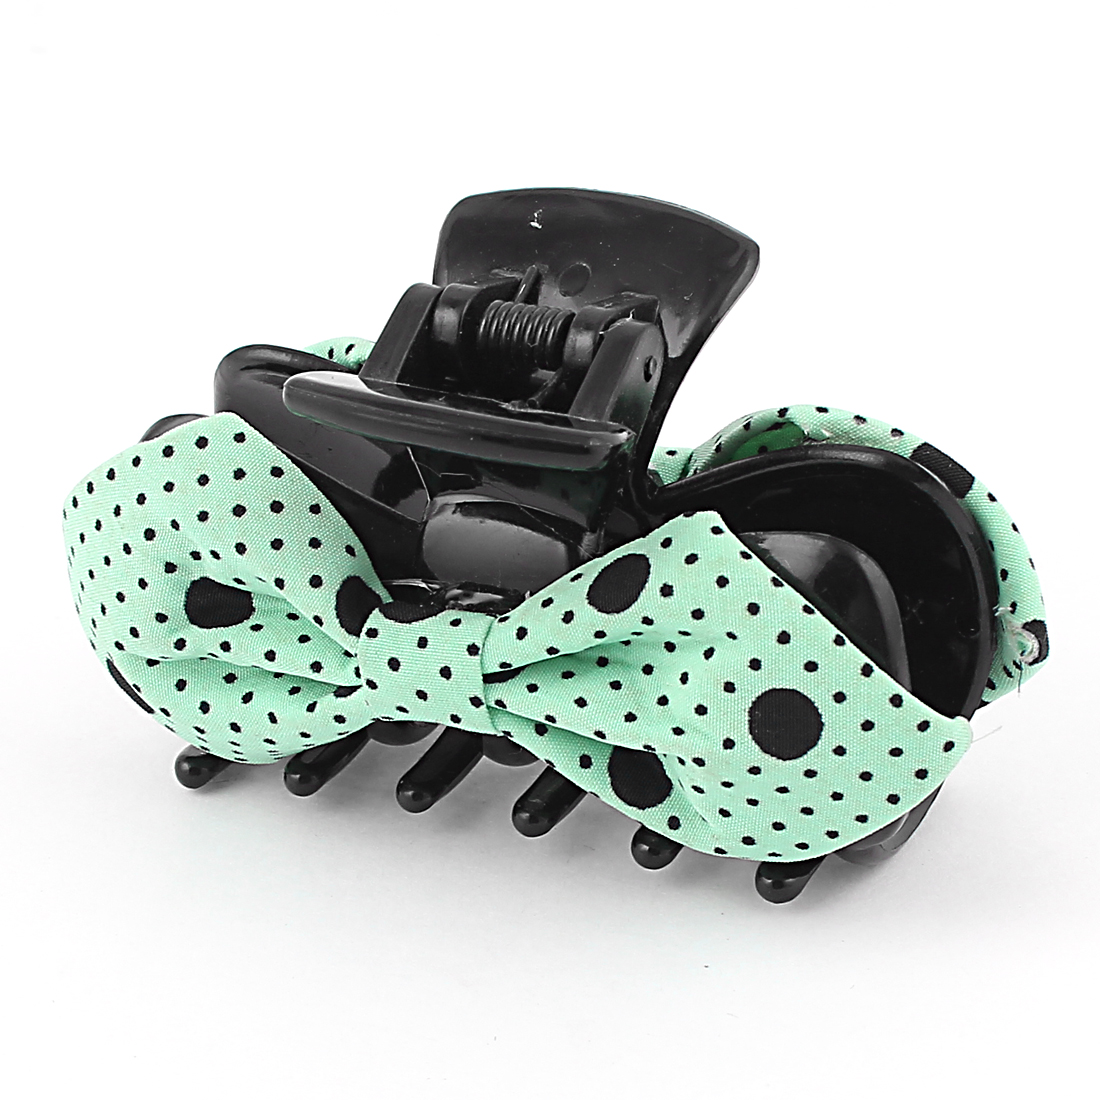 Women Hairstyle Spring Loaded Dot Print Teal Bowknot Decor Plastic Hairclip Hairclaw Hair Claw Clip Black